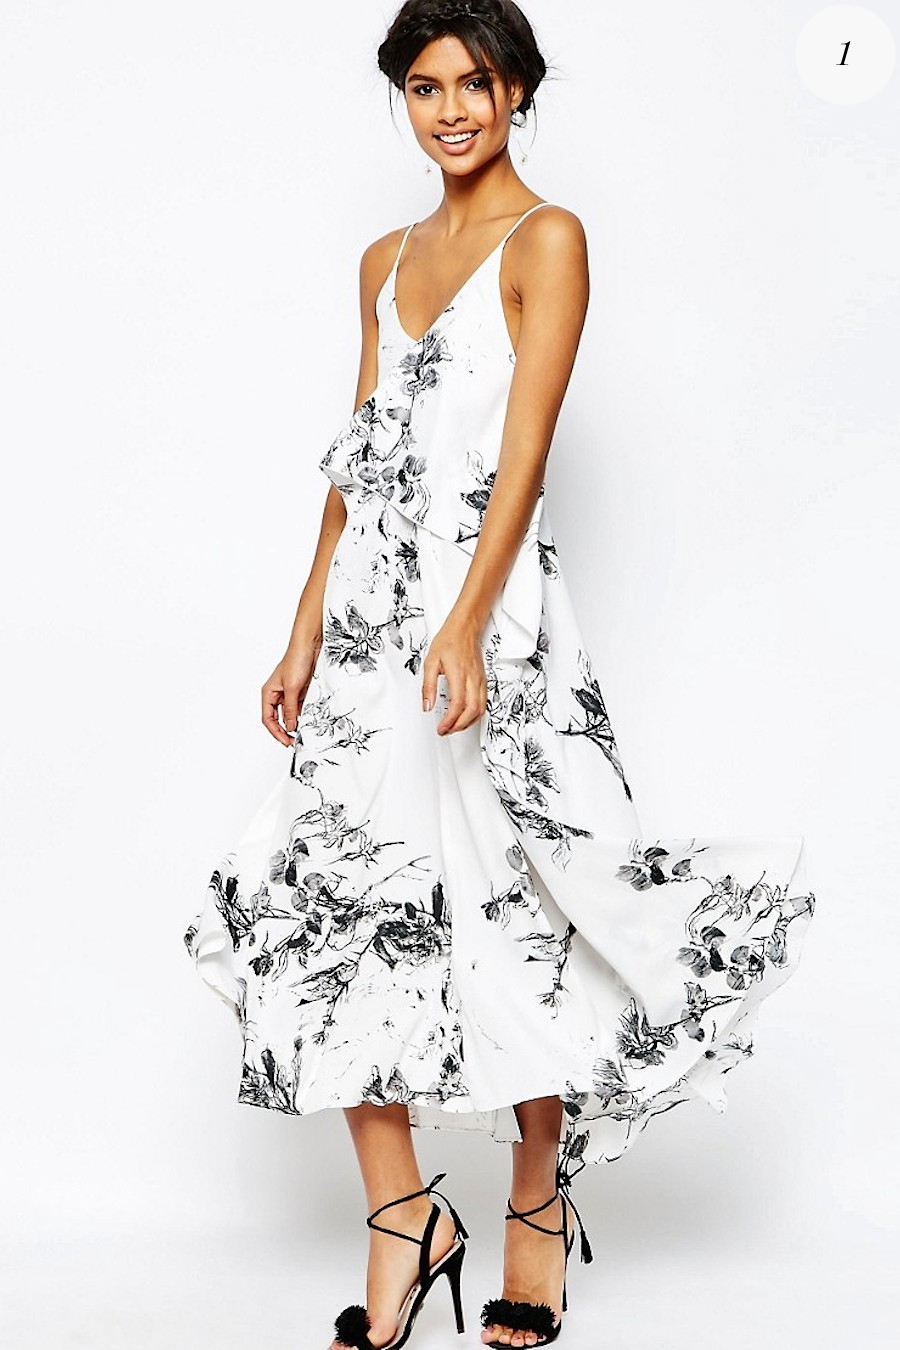 Wedding guest dresses fash-n-chips.com 1